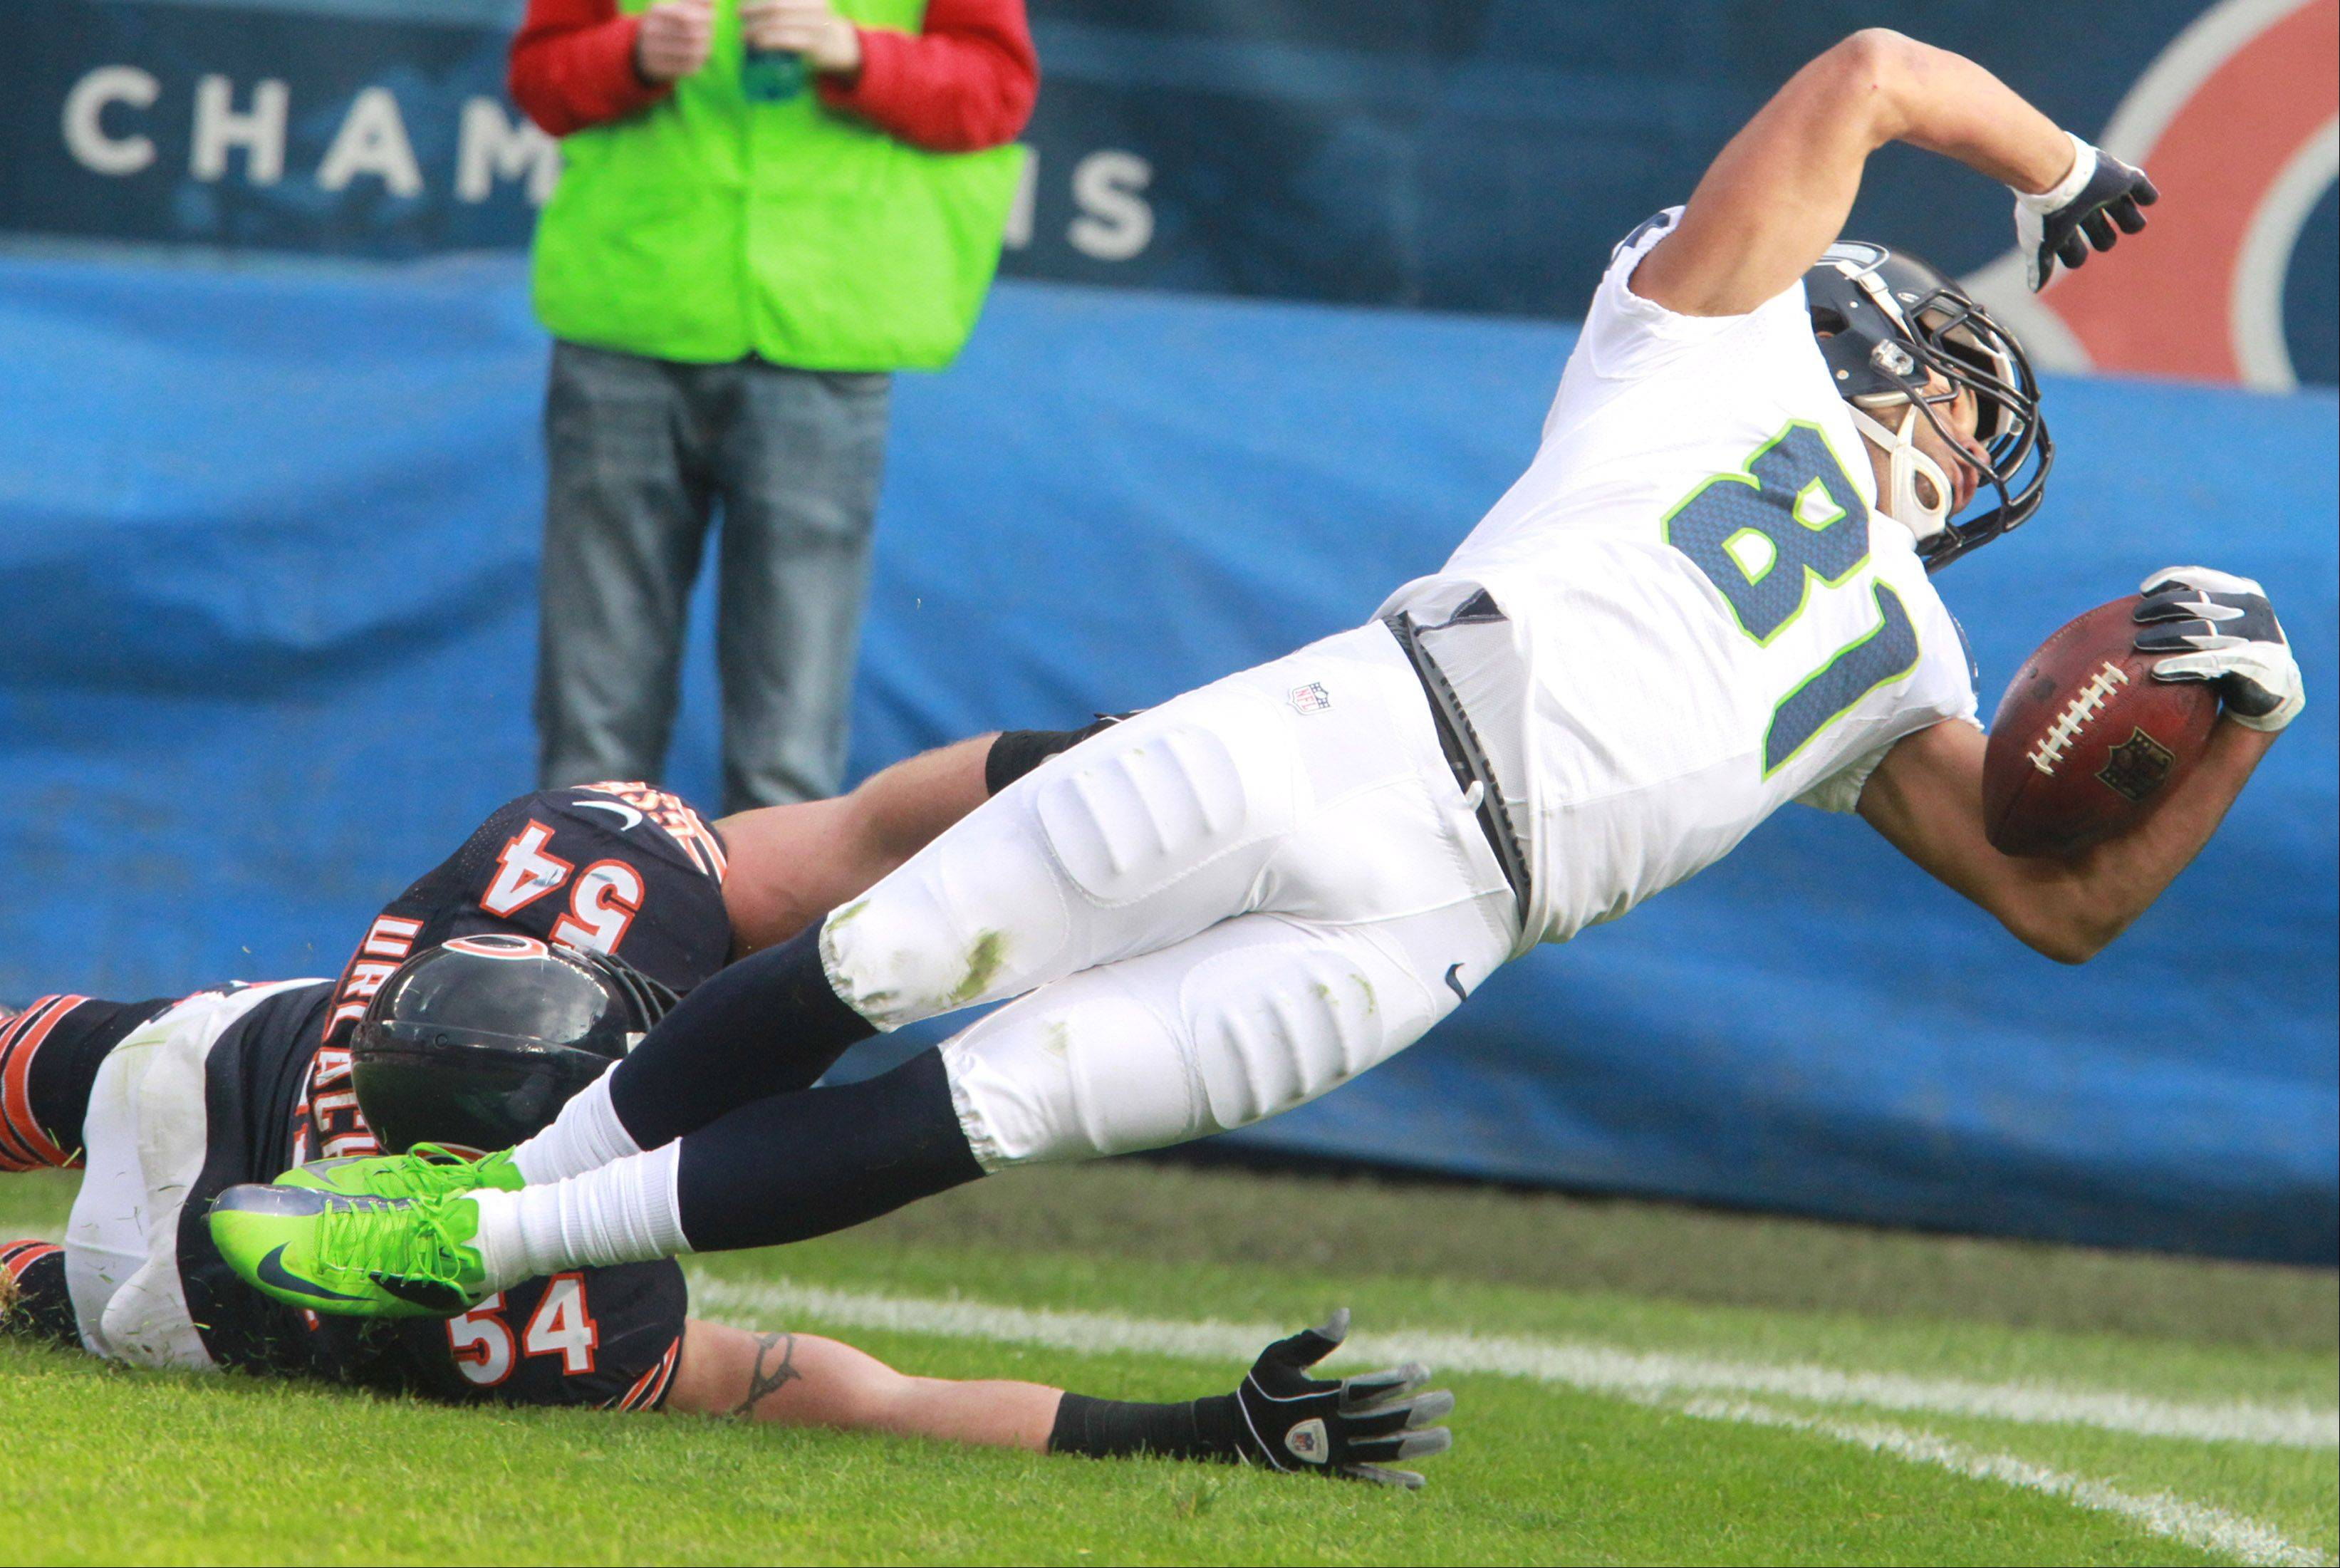 Brian Urlacher stops Seattle Seahawks wide receiver Golden Tate from scoring at Soldier Field on Saturday.